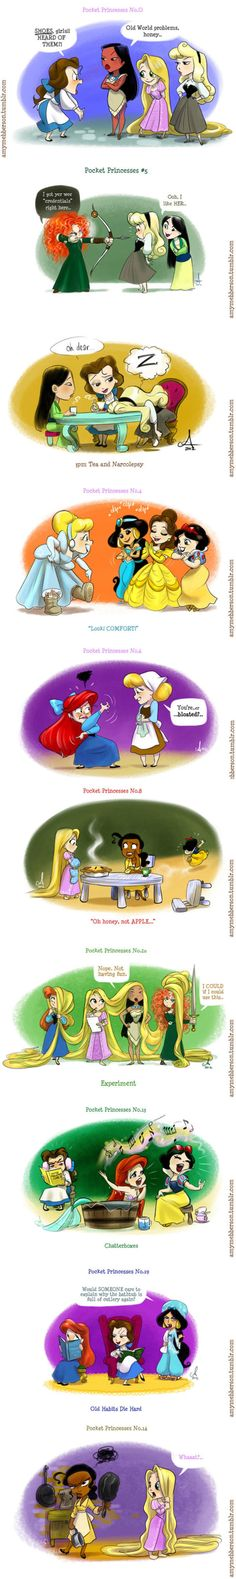 Pocket Princesses | Disney Princess | Know Your Meme